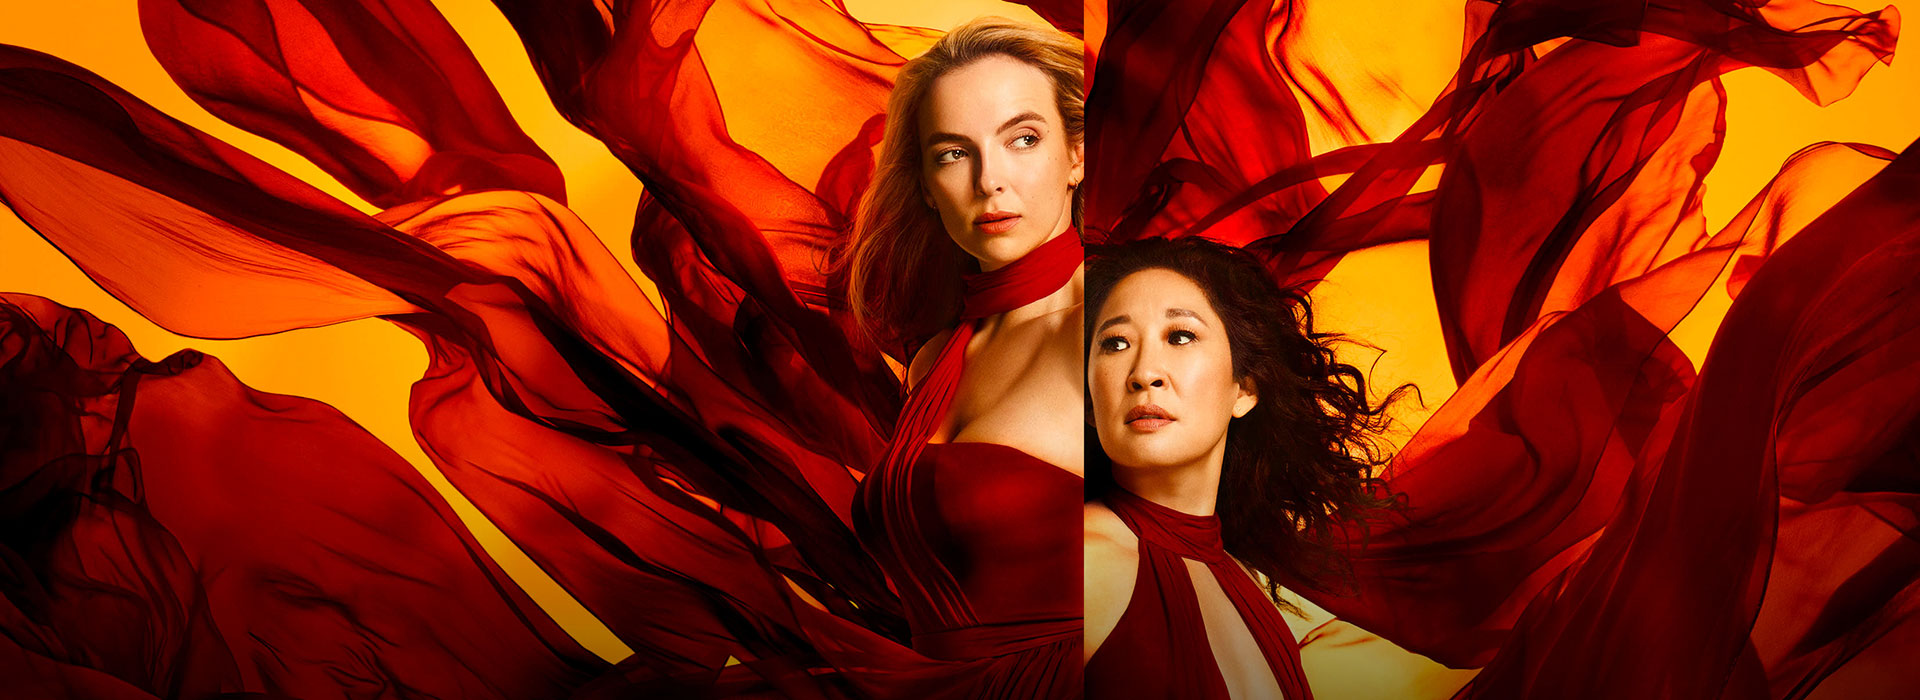 杀死伊芙 第三季 Killing Eve Season 3 (2020)